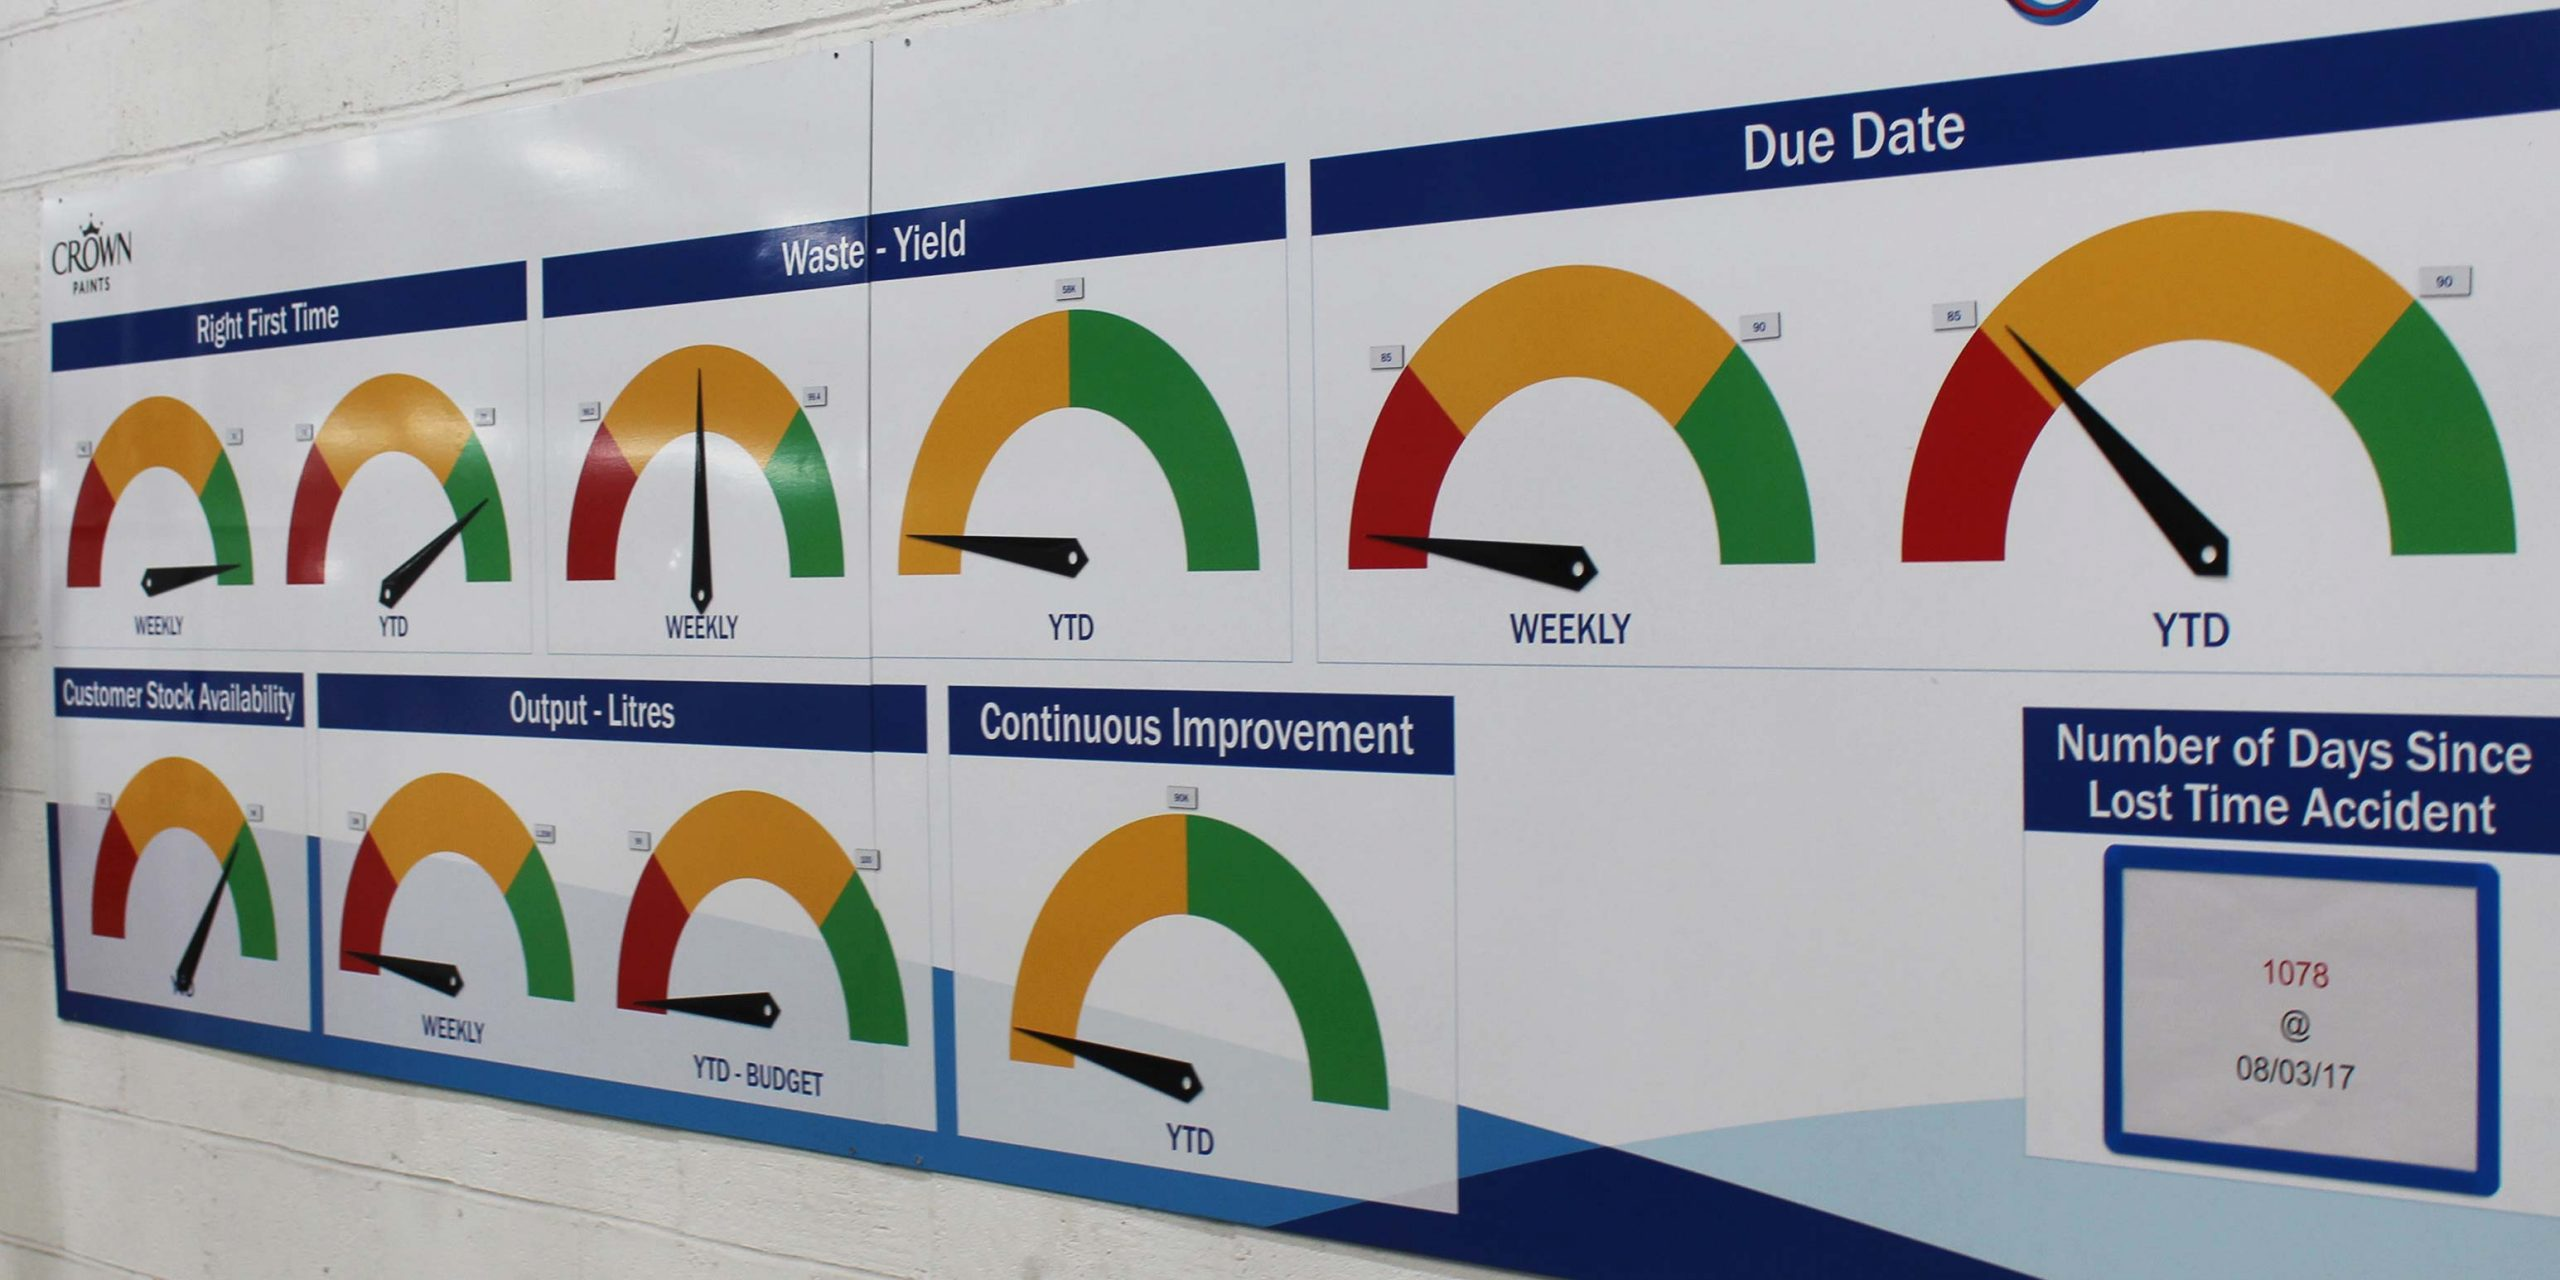 Crown Paints - Factory Performance Board - Rev Counter - Visual Management Example - Clarity Visual Management